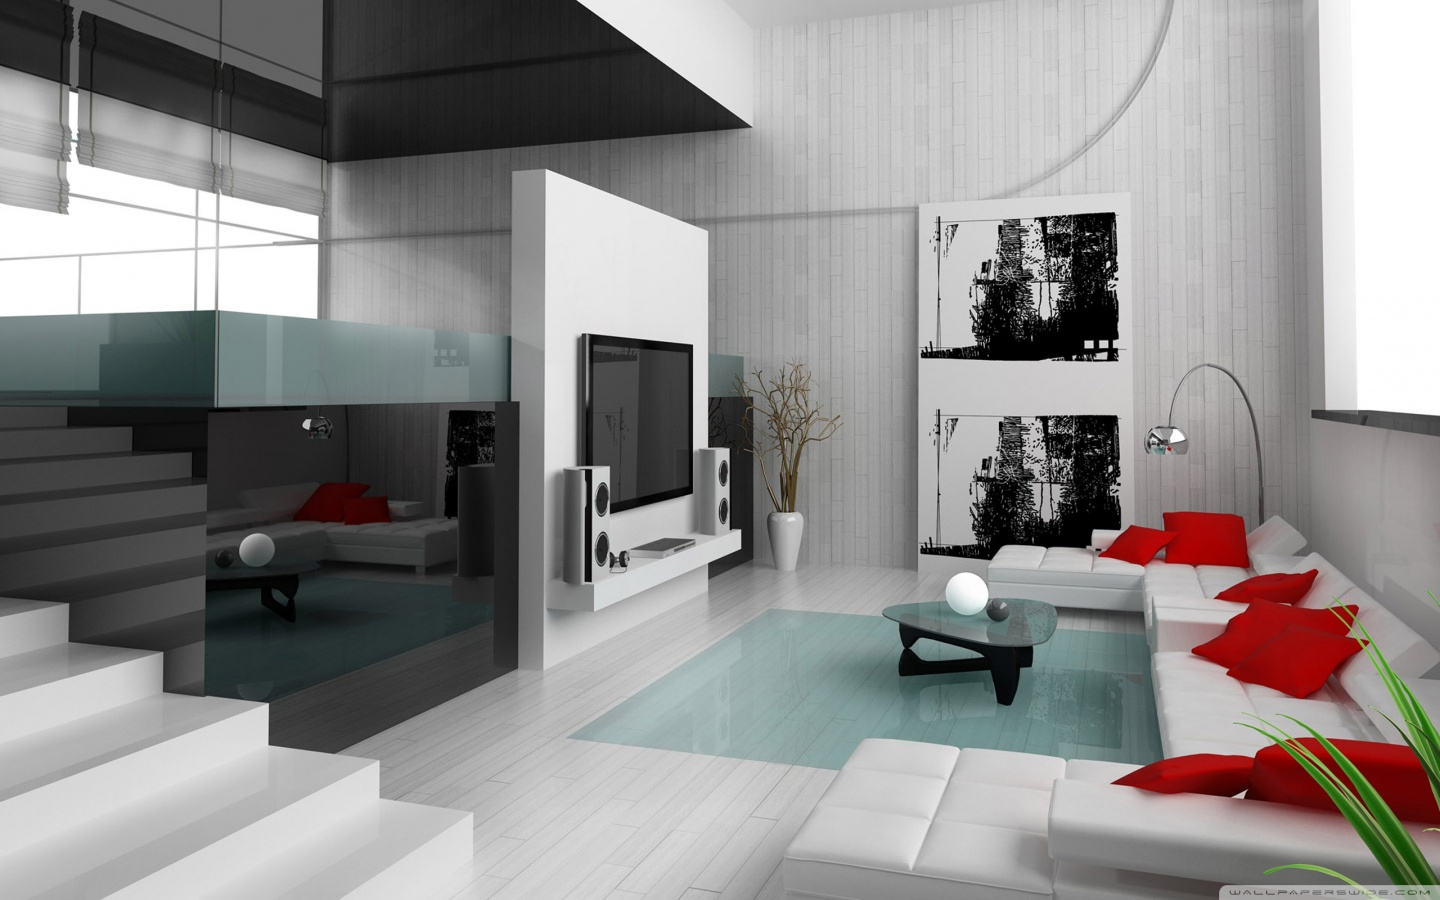 Minimalist interior design imagination art architecture for Modern minimalist style